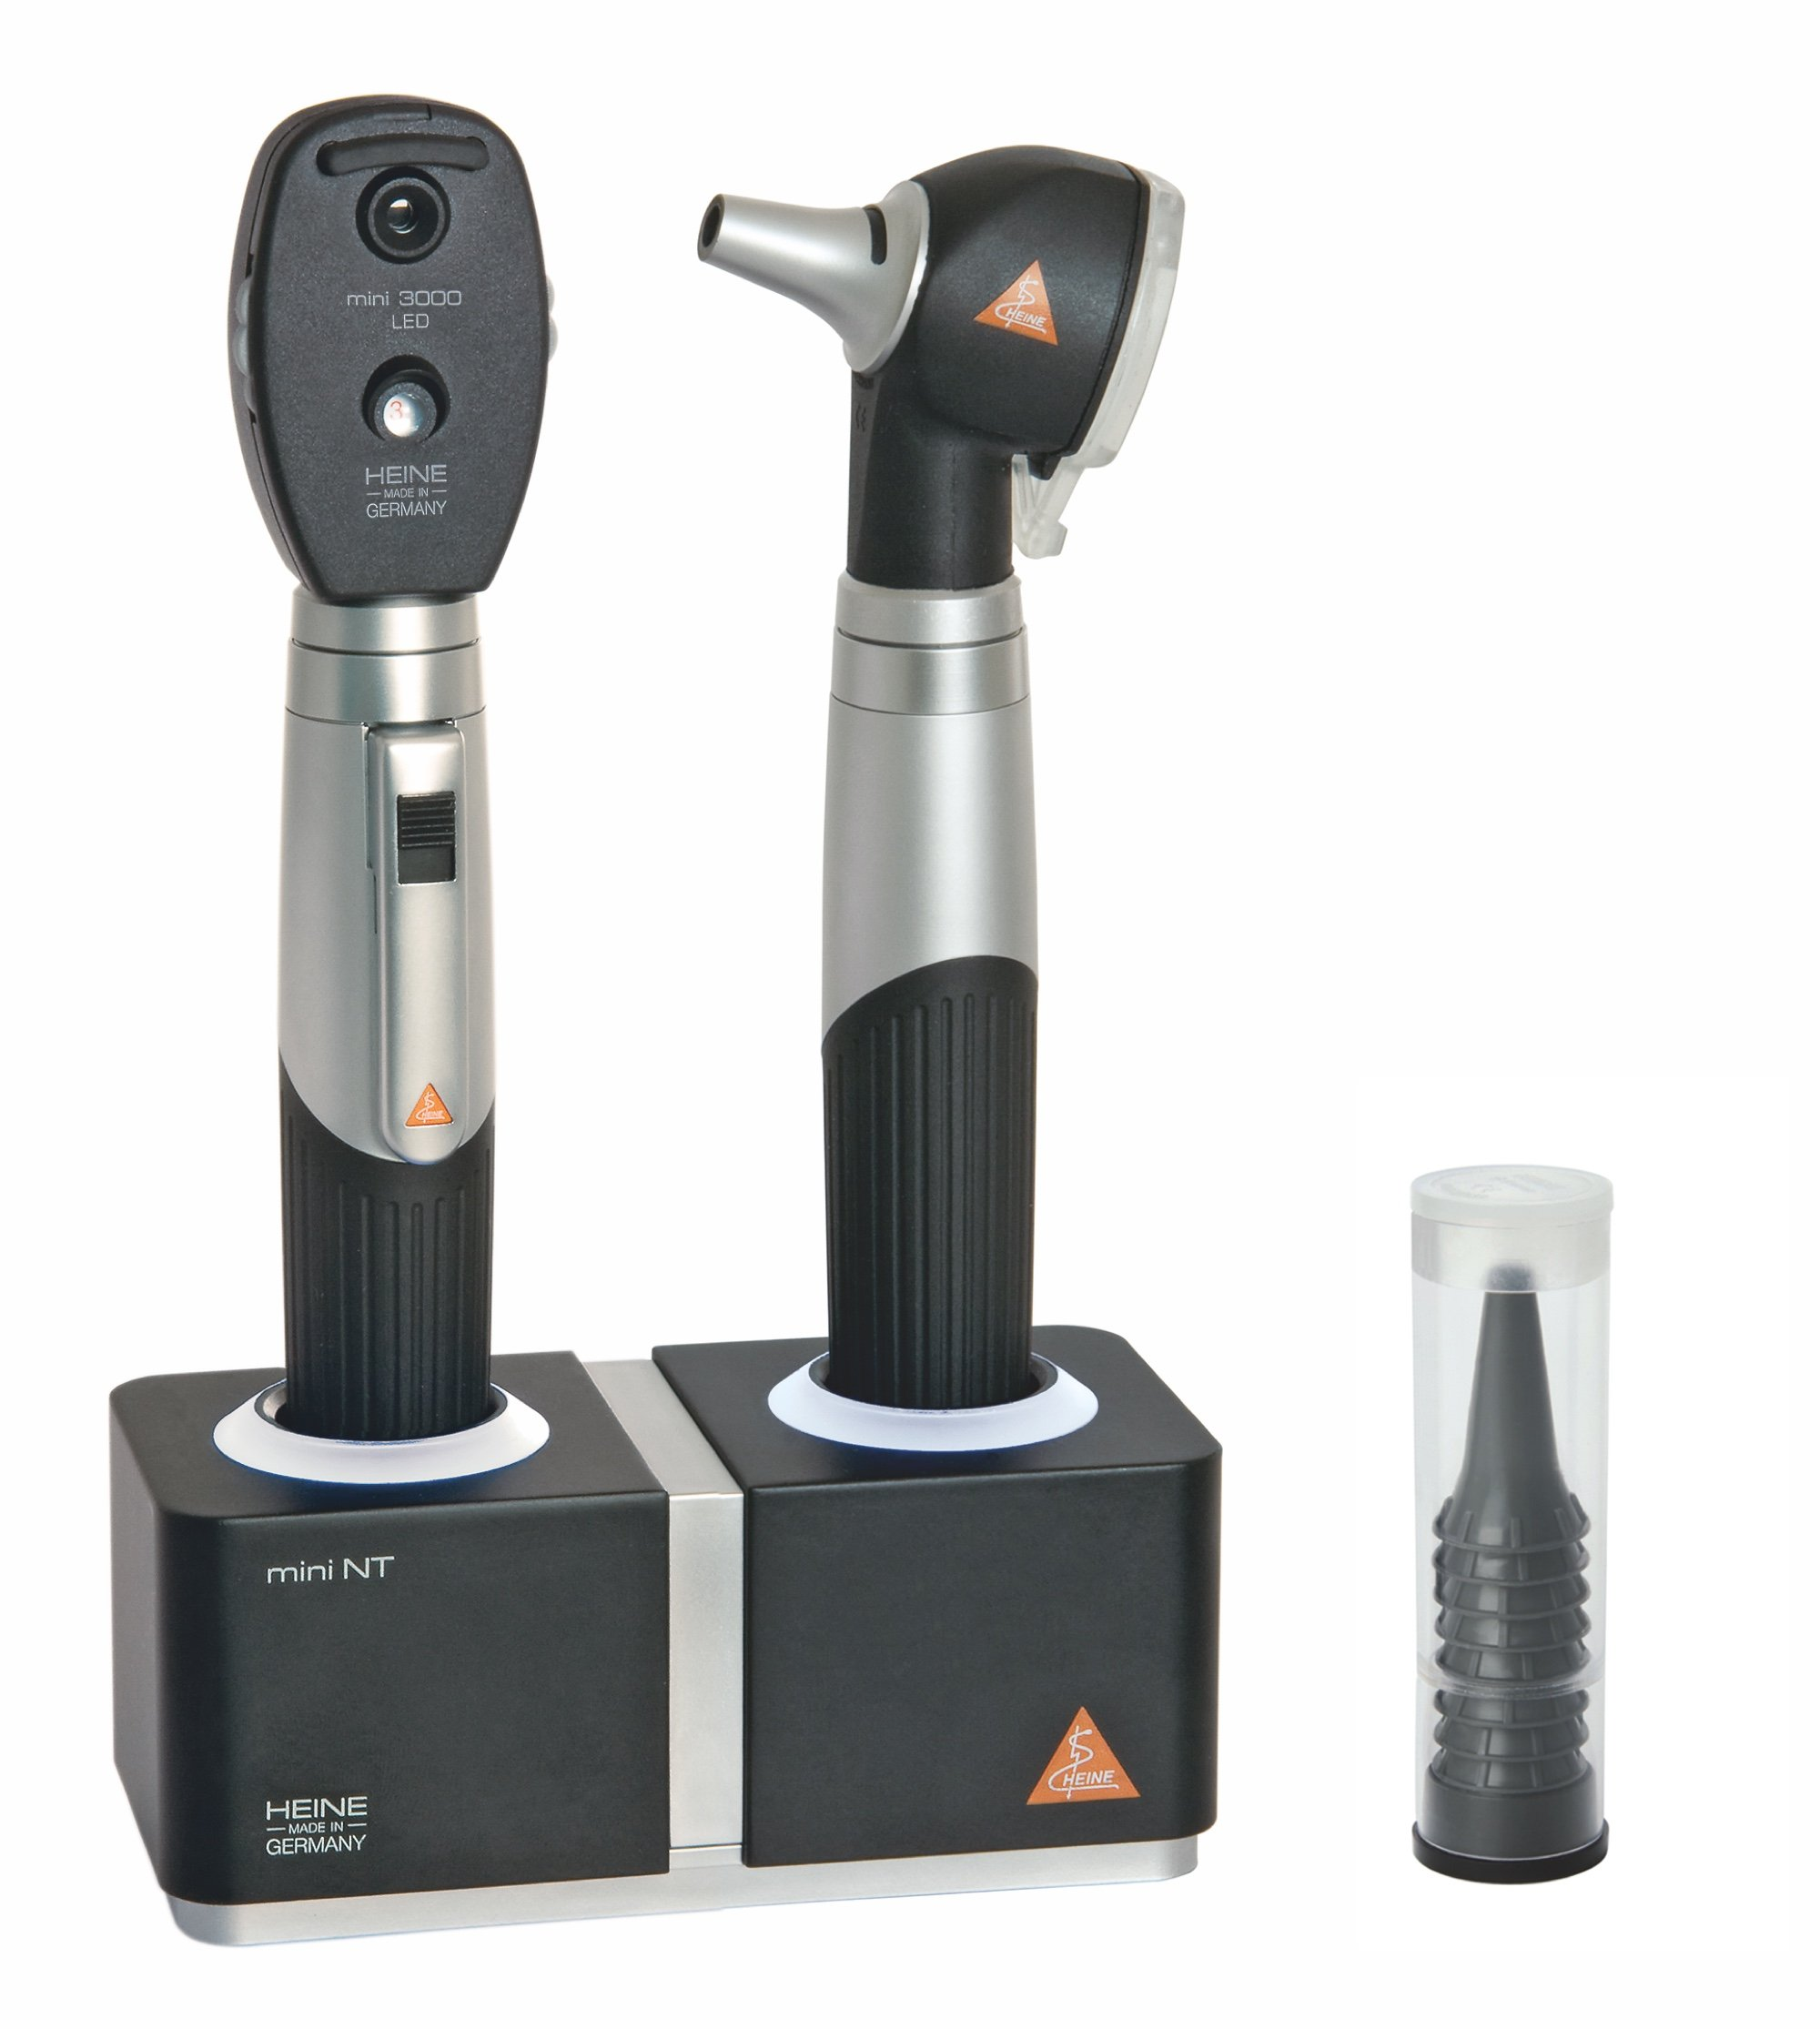 HEINE mini3000 LED Otoscope/Ophthalmoscope Set with MiniNT Charger